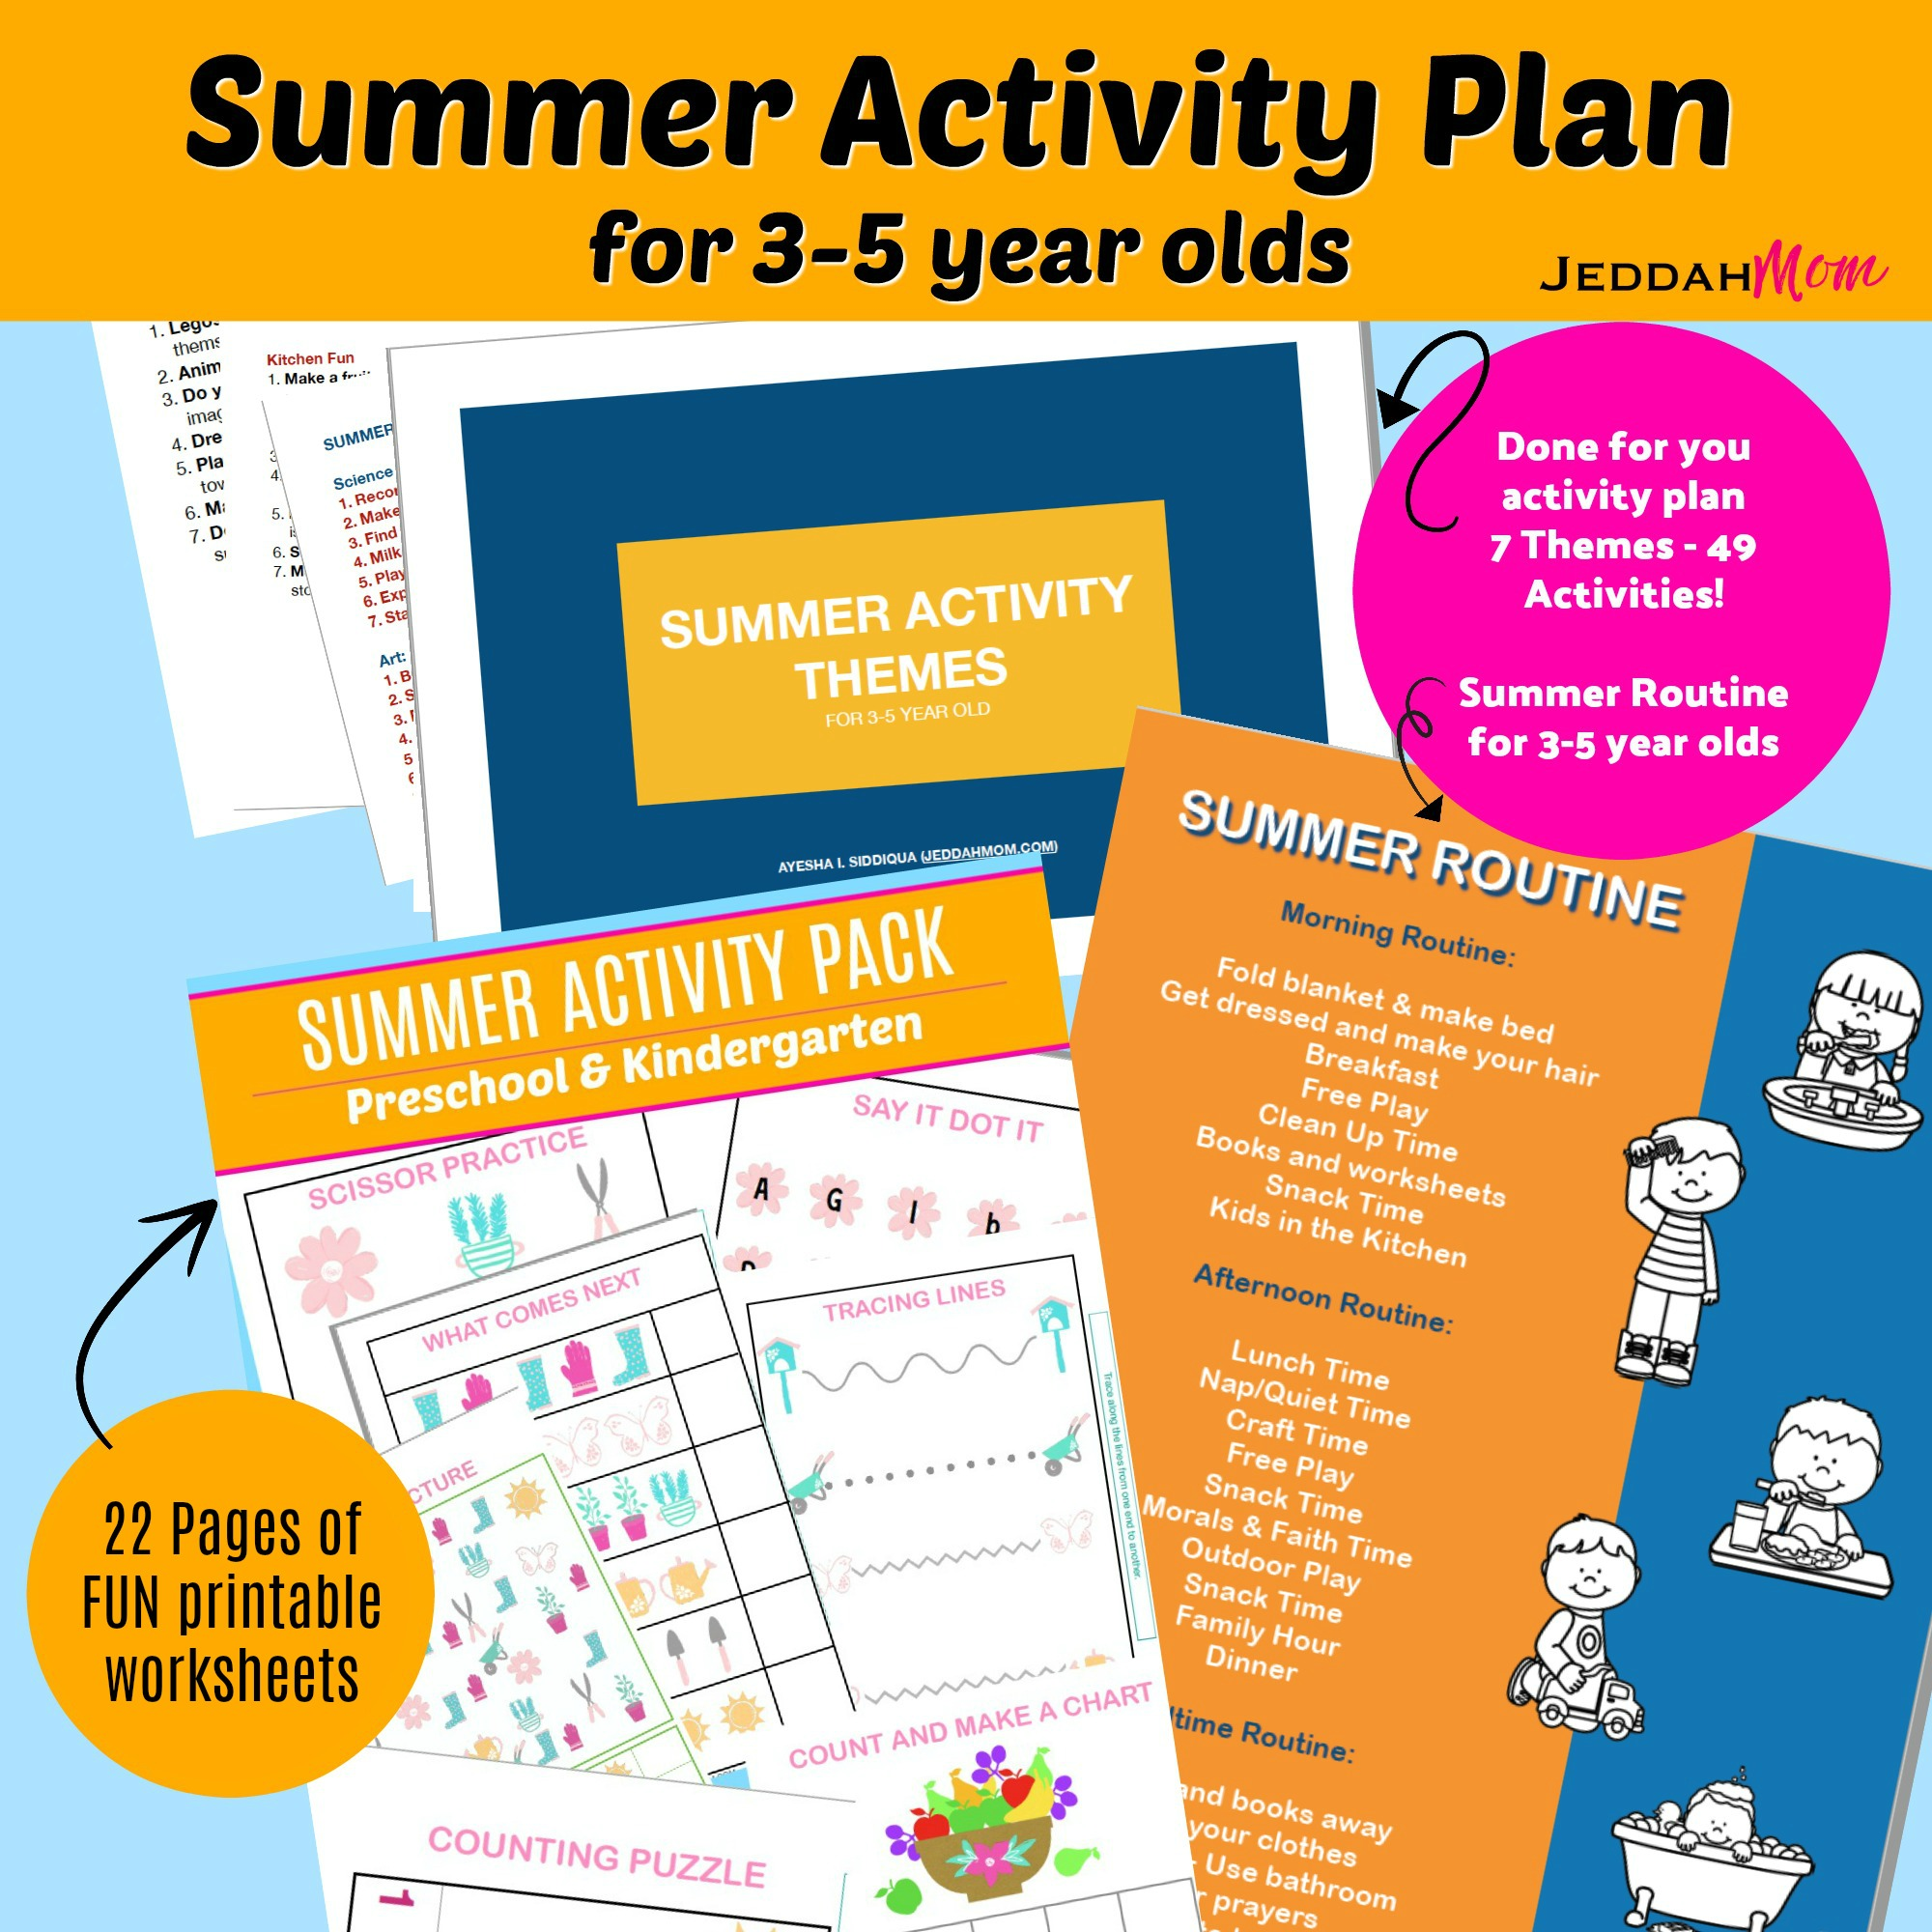 Summer Activity Plan for 3-5year olds JeddahMom